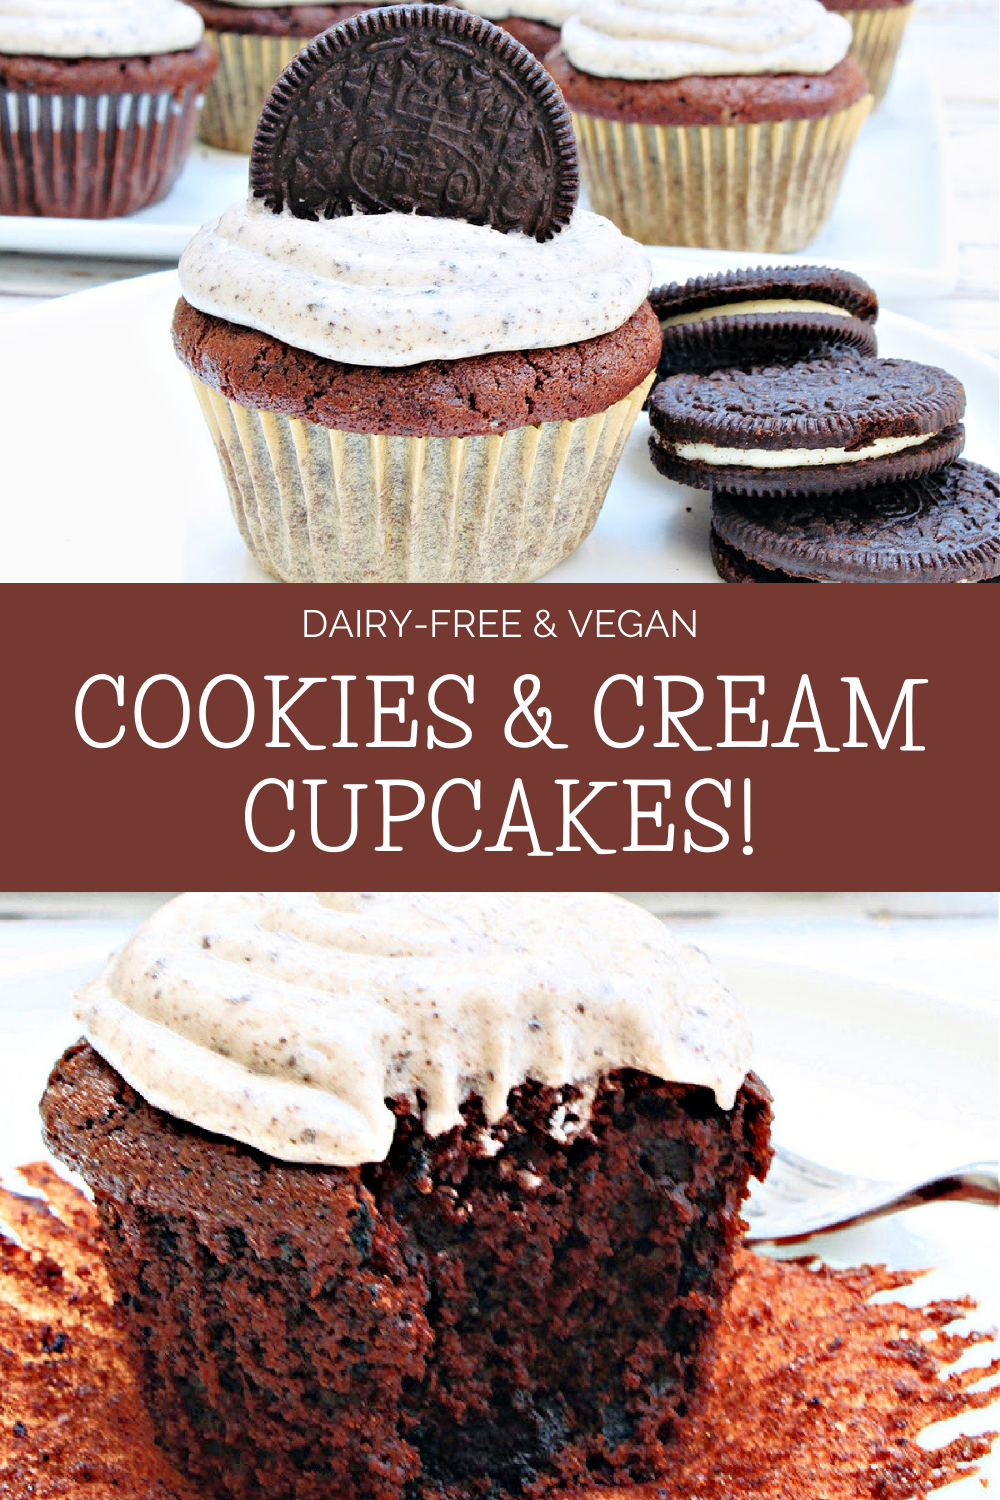 Vegan Cookies and Cream Cupcakes ~ Chocolate Oreo cupcakes topped with Oreo-infused buttercream frosting! Perfect for a birthday party or everyday treat! via @thiswifecooks